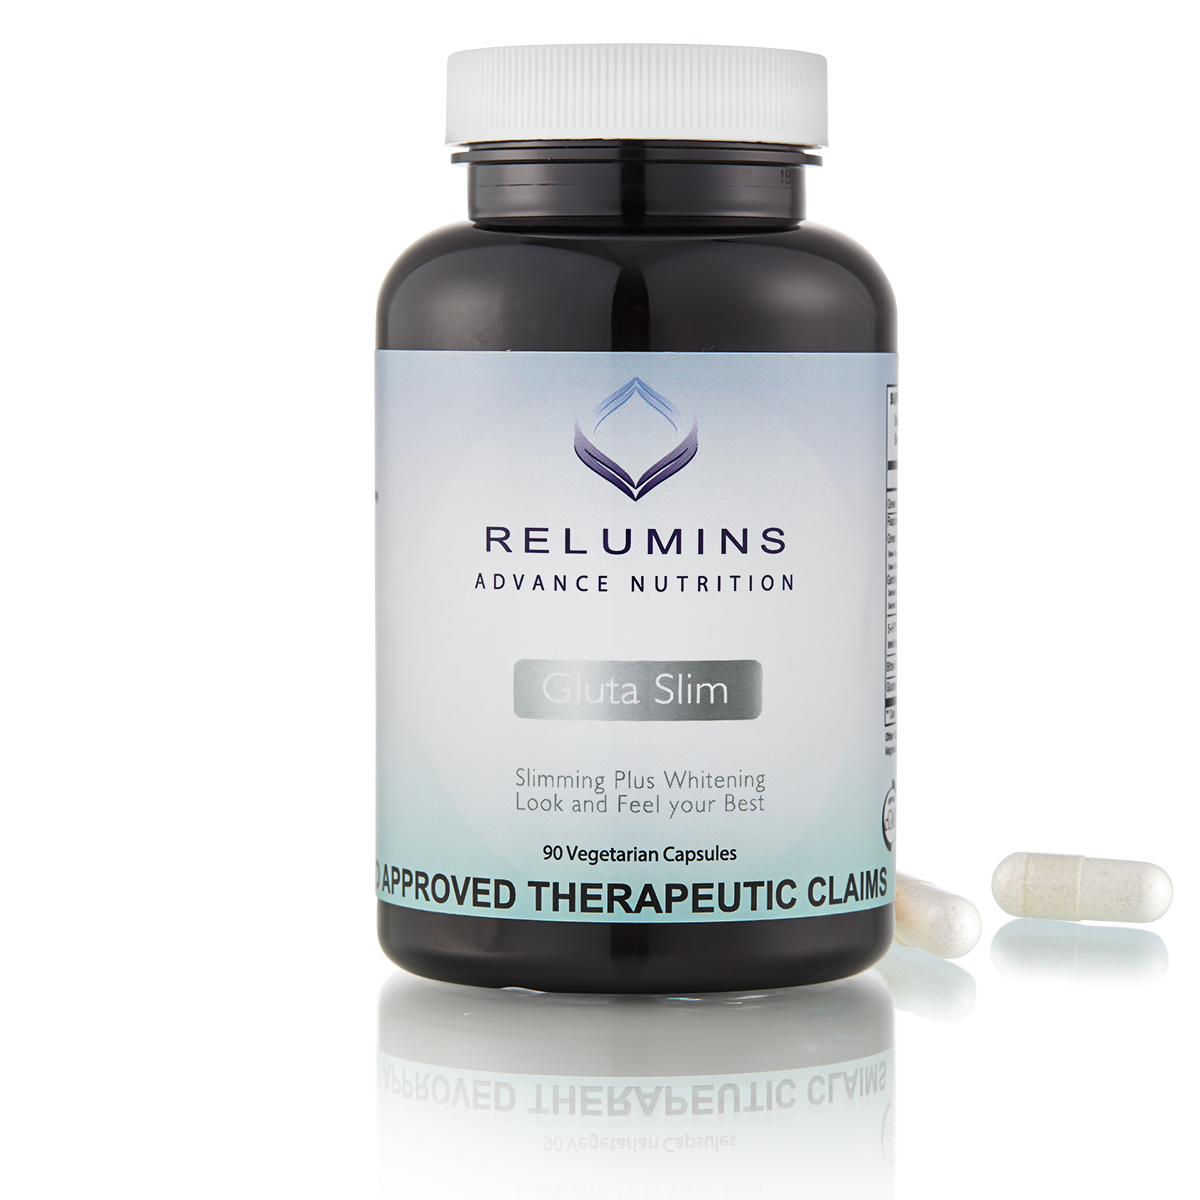 NEW! Relumins Gluta Slim - Fast Reduction of Weight and Maximum Skin Lightening Support